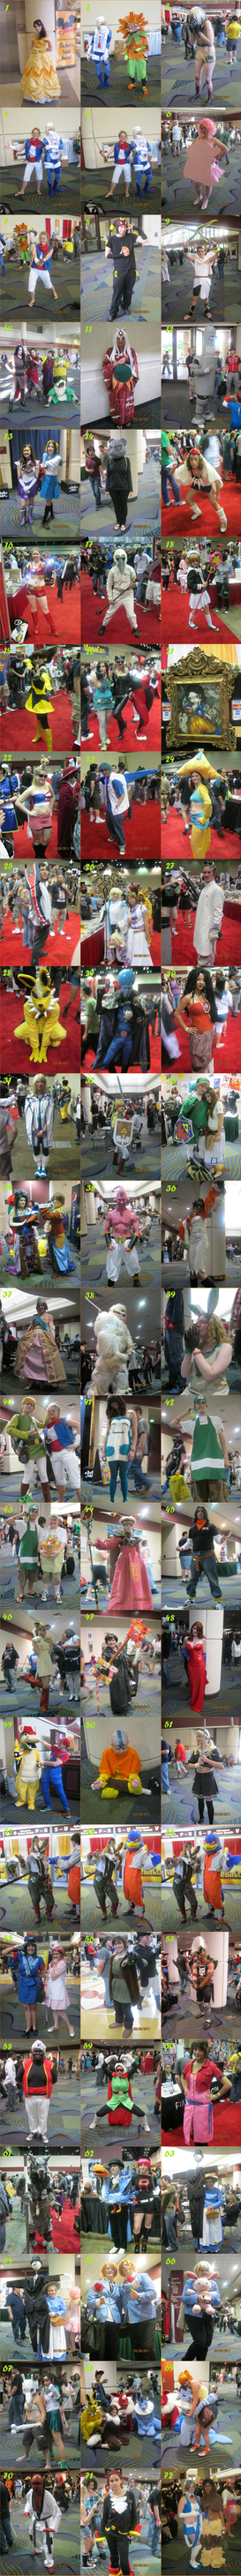 MegaCon 2011 - Saturday 1 by NezuKunoichi